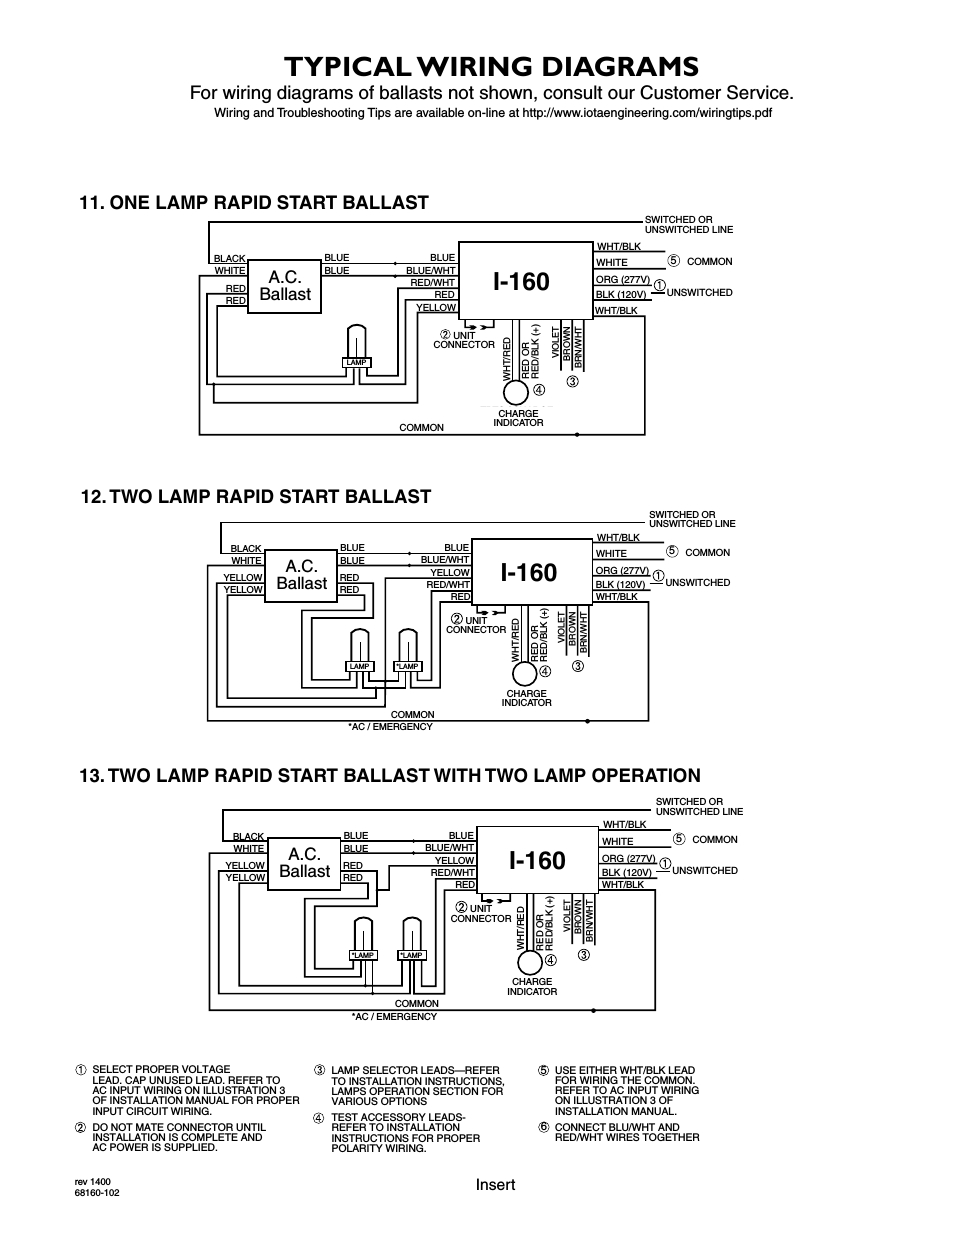 Typical Wiring Diagrams, I-160, A.c. Ballast | Iota I-160 User - Ballast Wiring Diagram